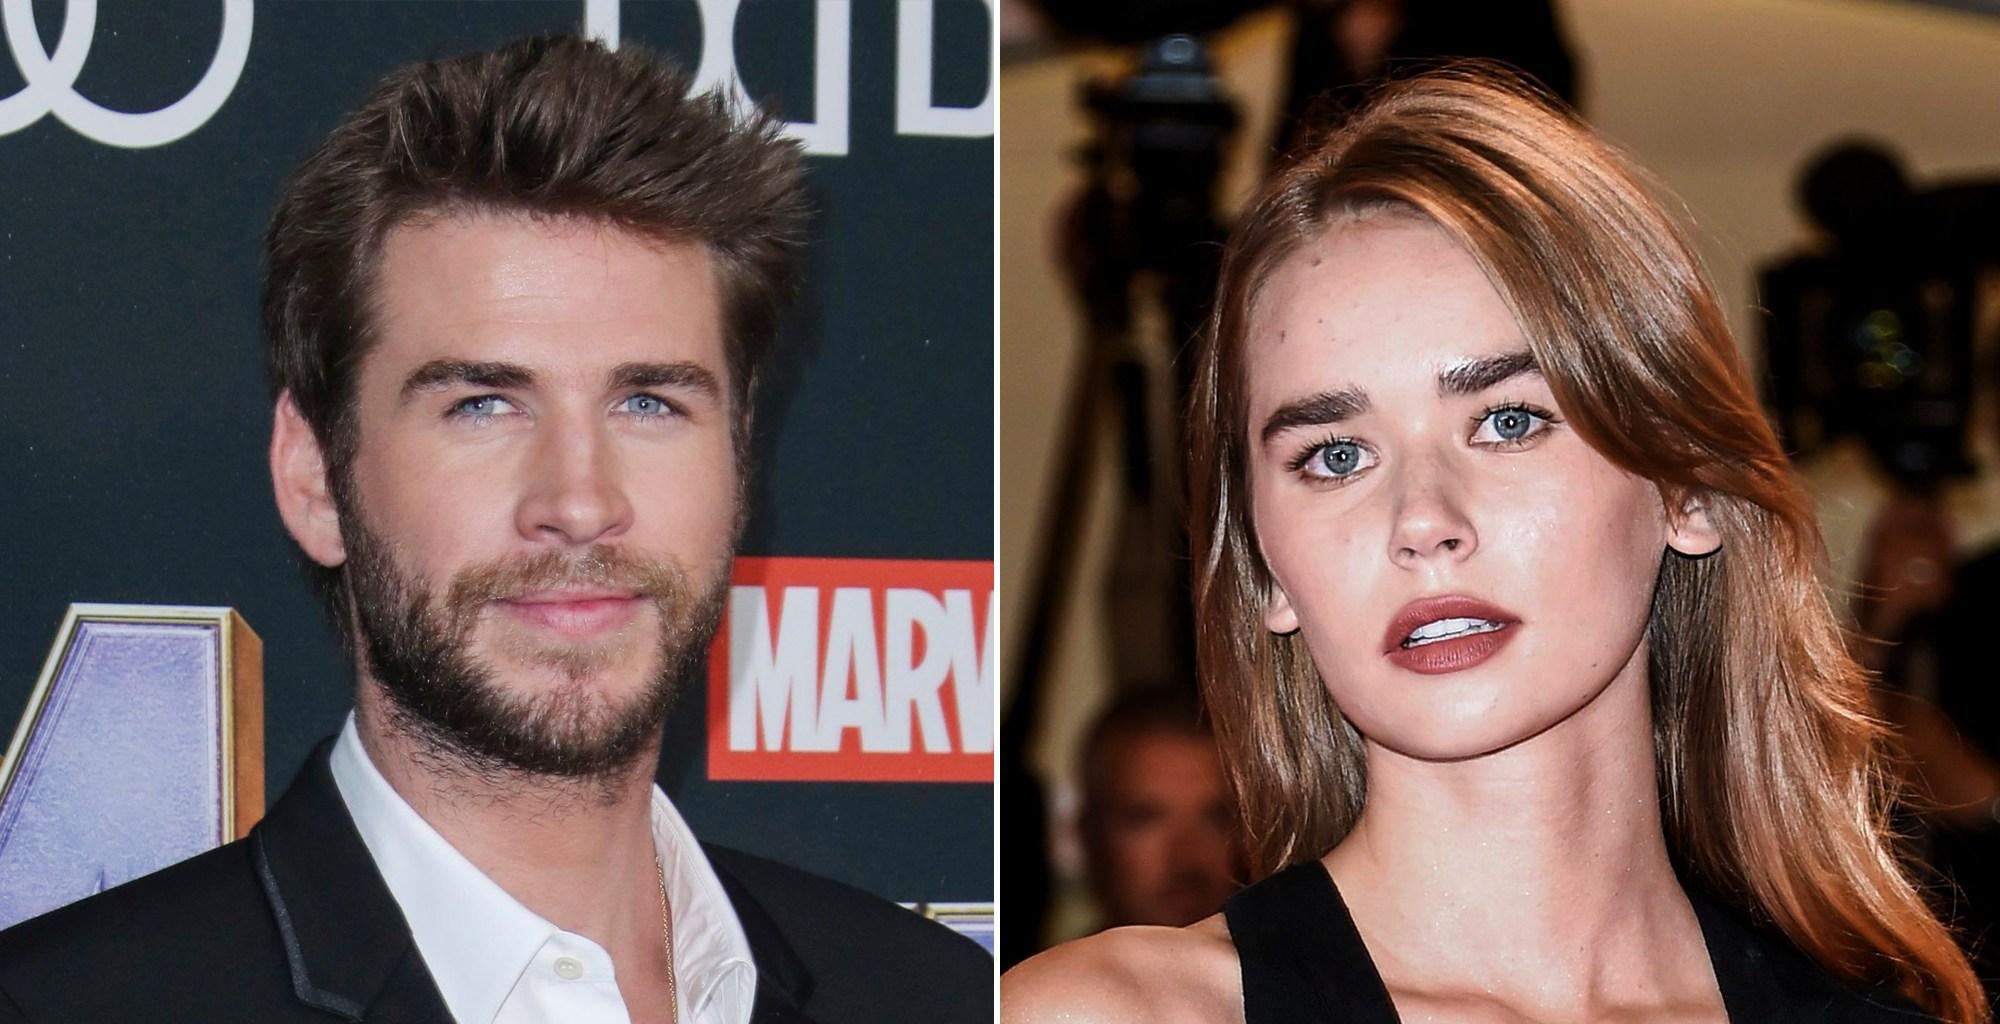 Liam Hemsworth And Gabriella Brooks' Romance Getting 'Serious' - Inside Their Relationship!